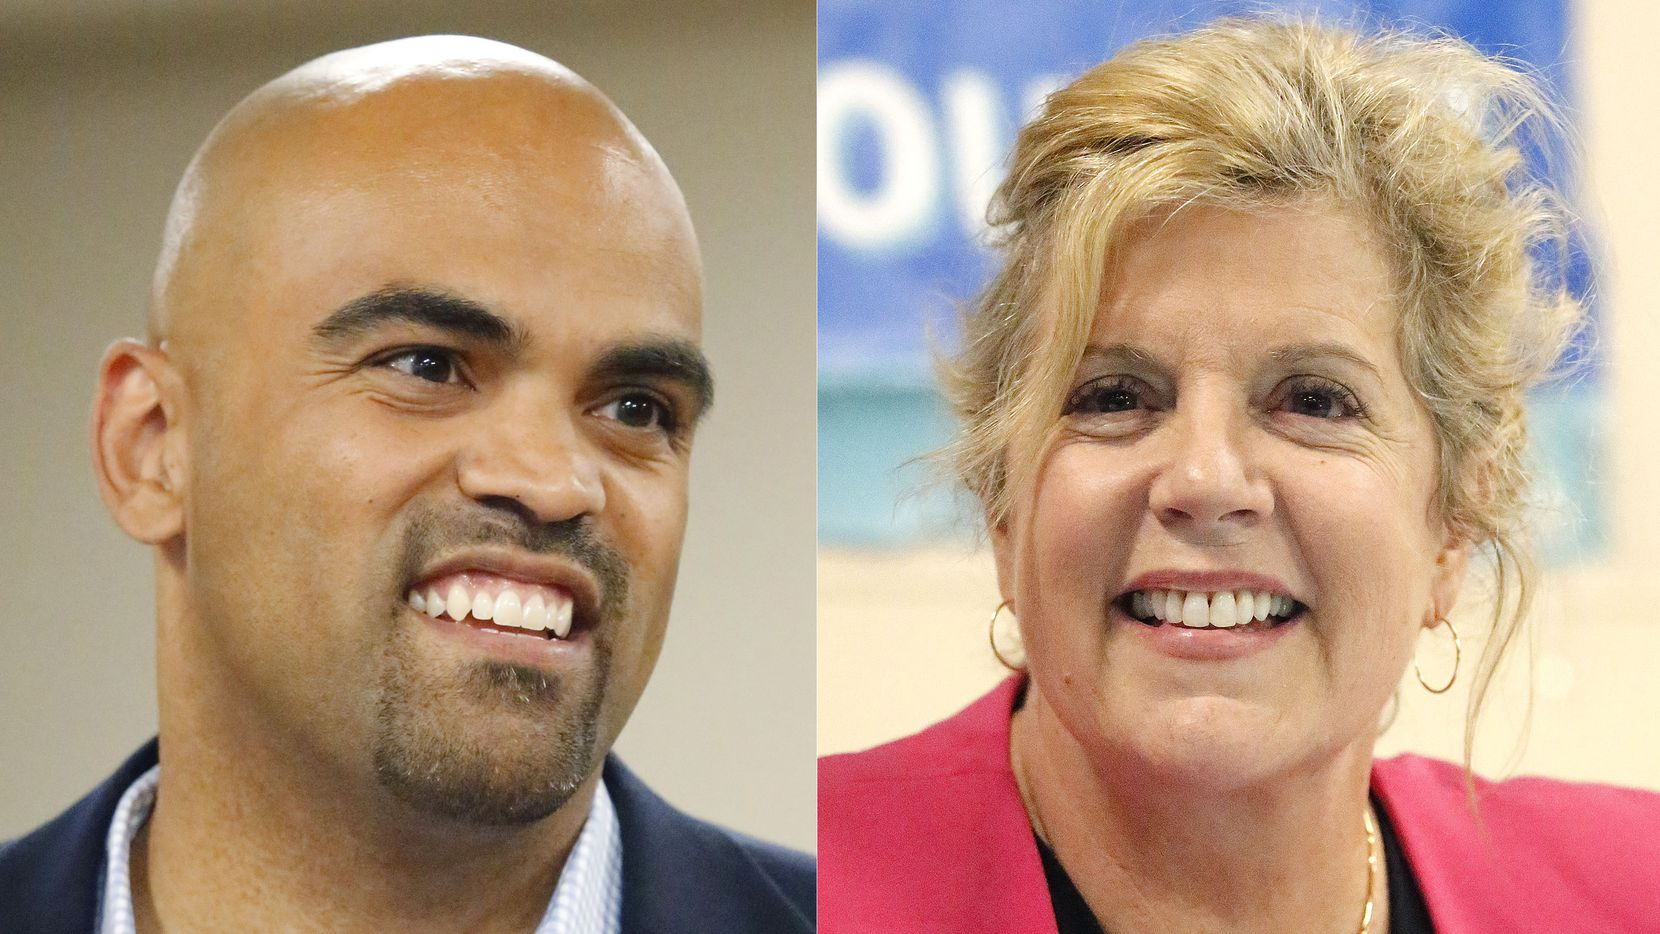 Colin Allred and Lillian Salerno are facing off in a Democratic primary runoff for the chance to face Republican Rep. Pete Sessions in the race for the 32nd Congressional District.